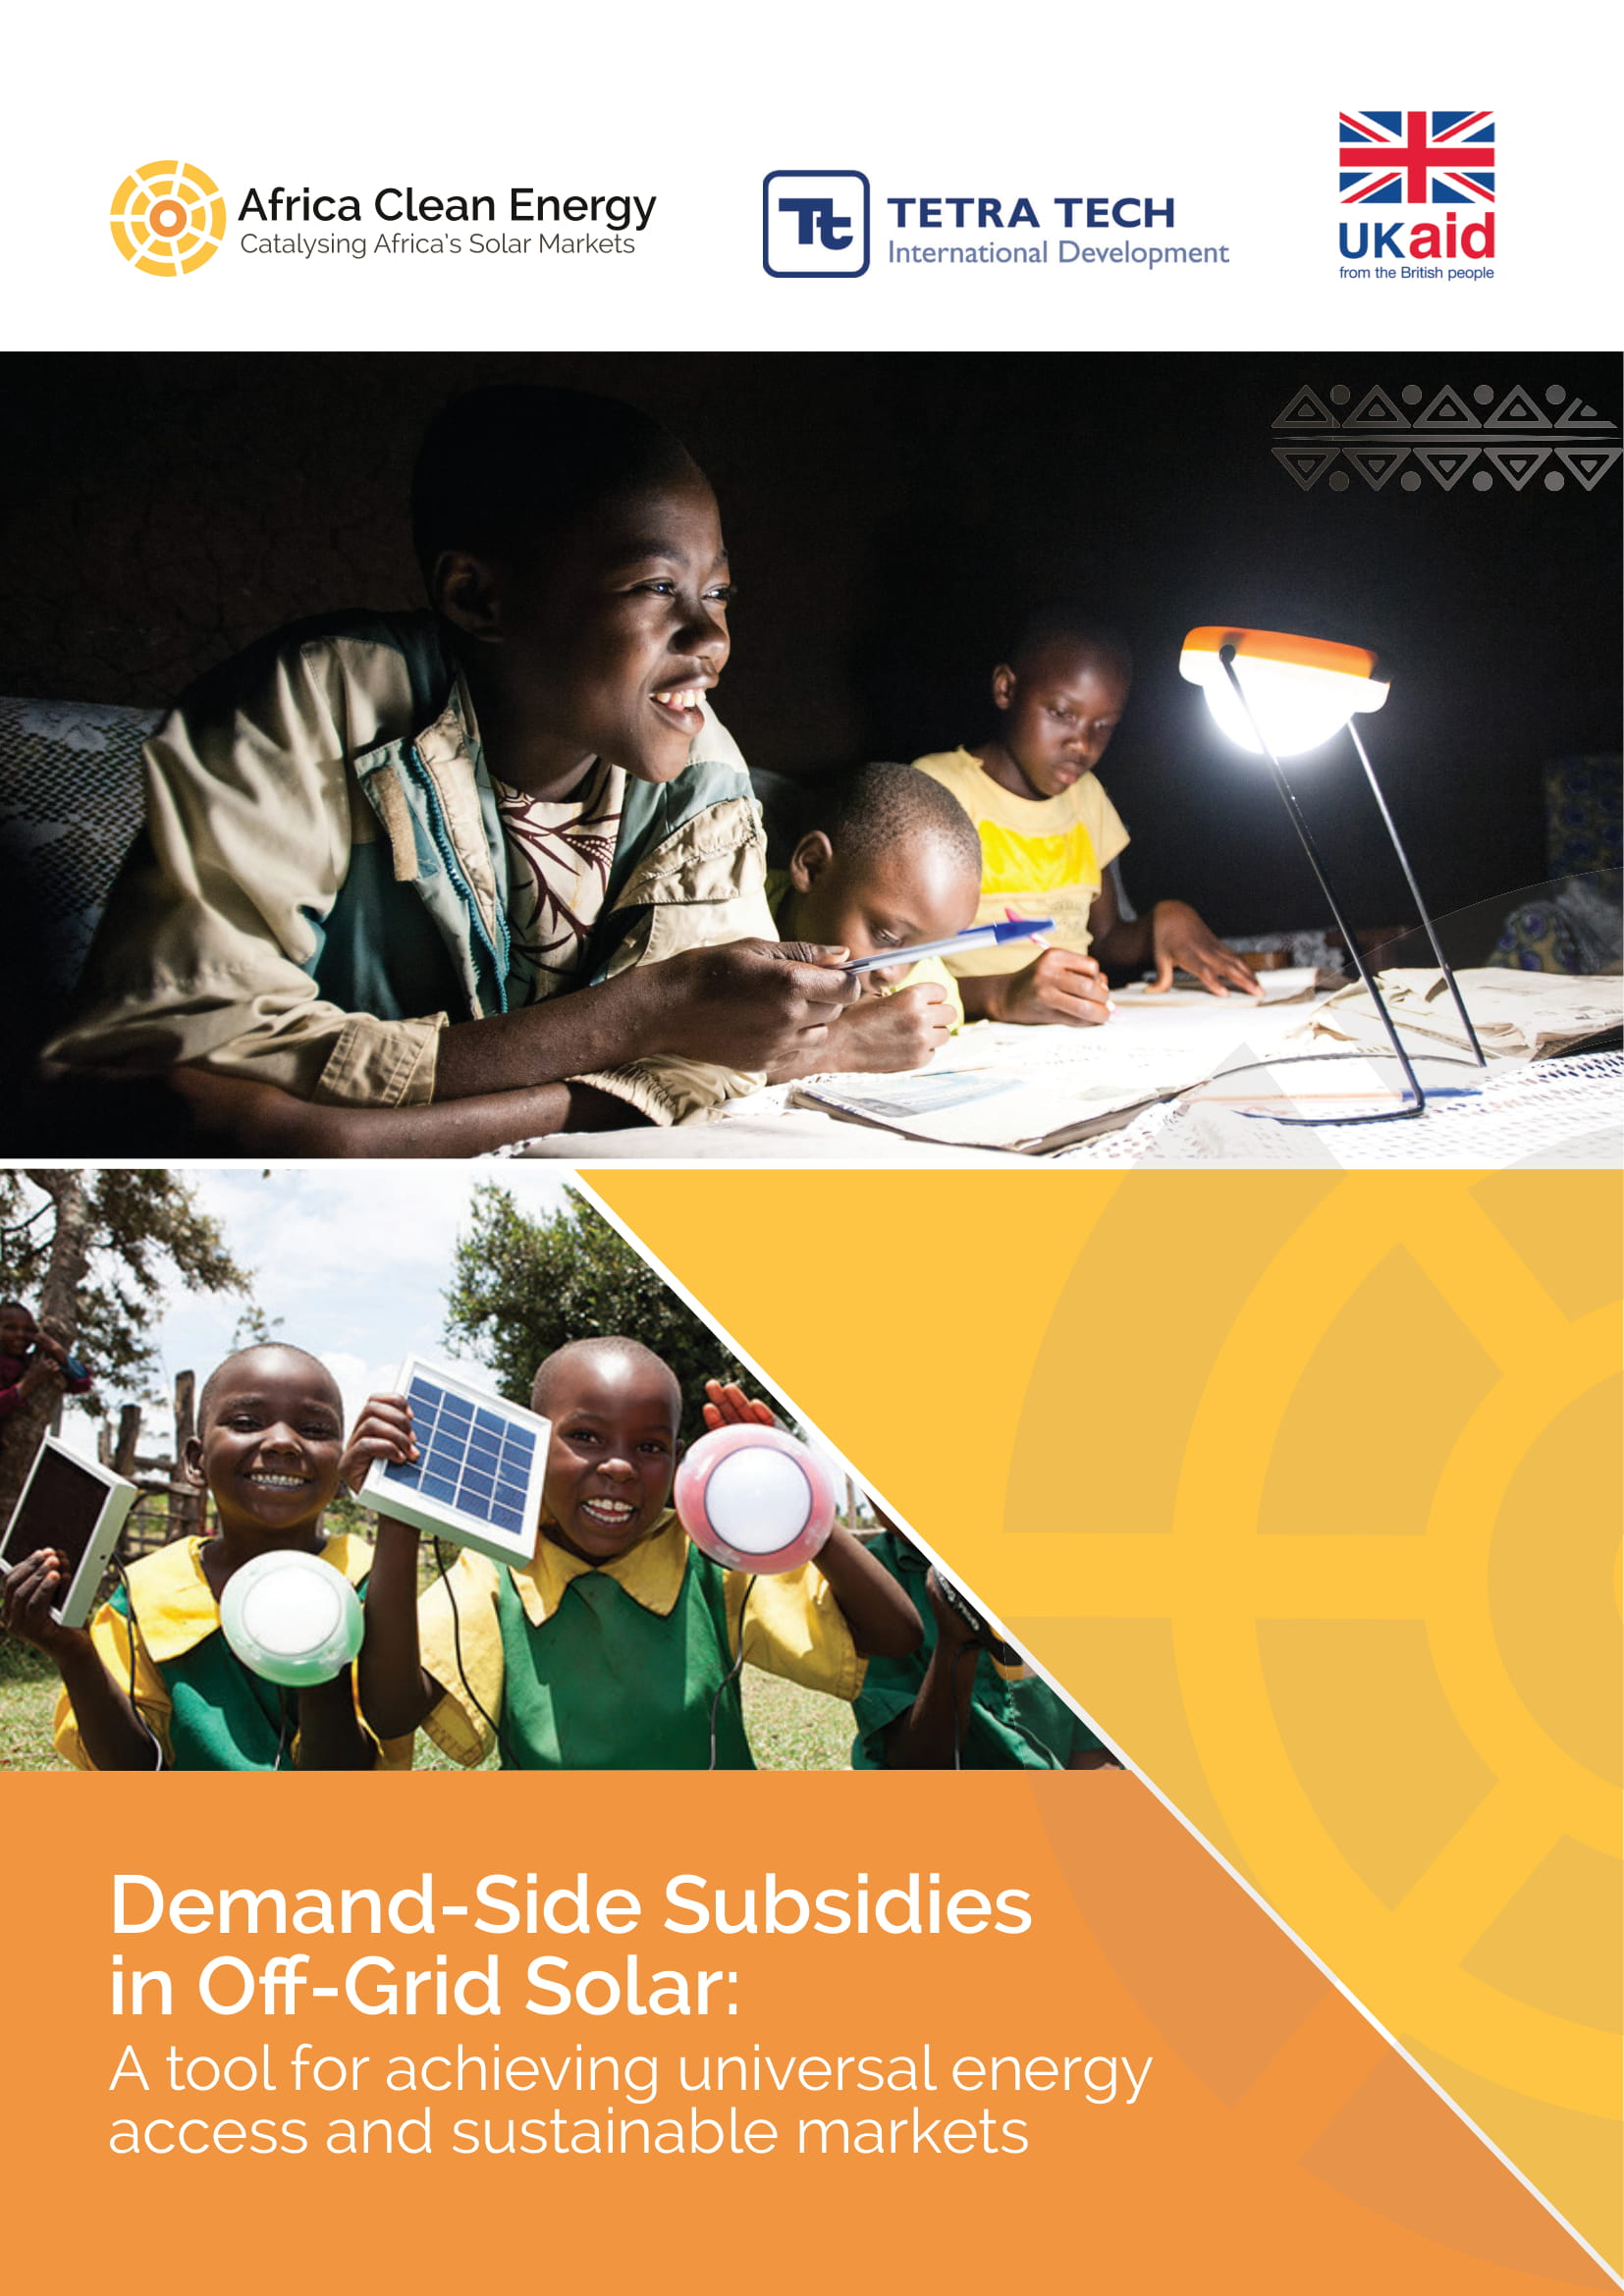 Demand-Side Subsidies in Off -Grid Solar: A Tool for Achieving Universal Energy Access and Sustainable Markets